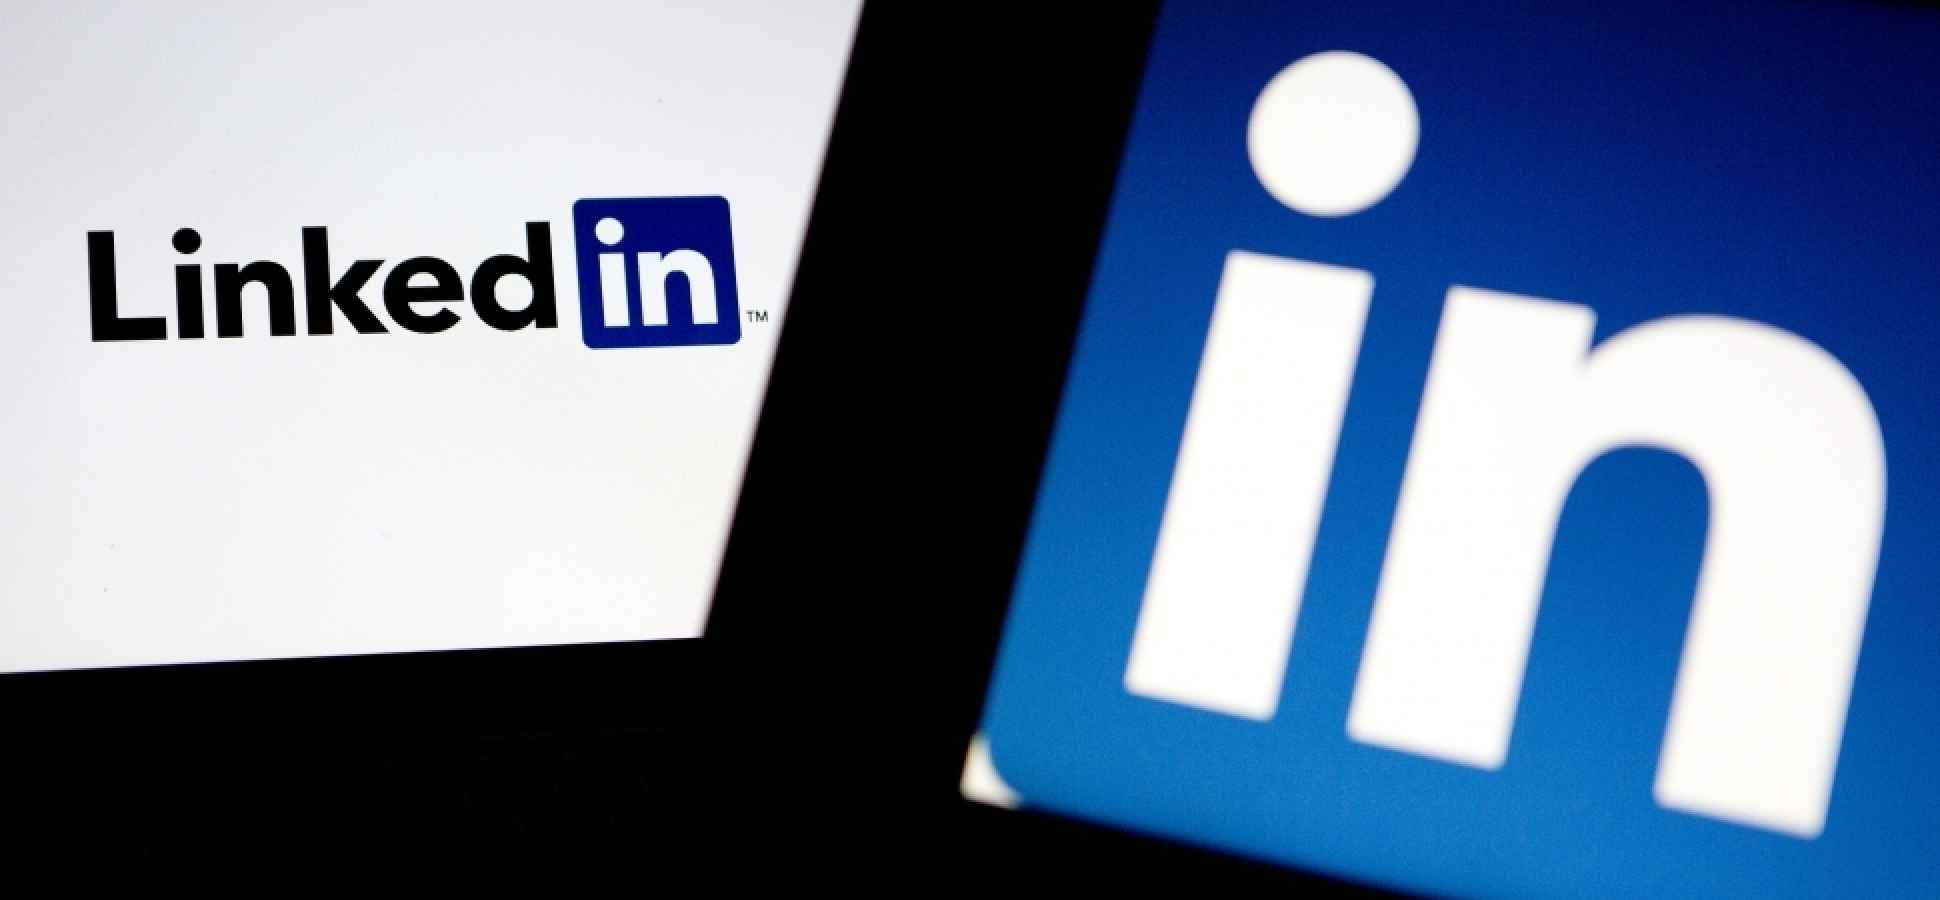 The 10 Worst Words to Use in Your LinkedIn Profile